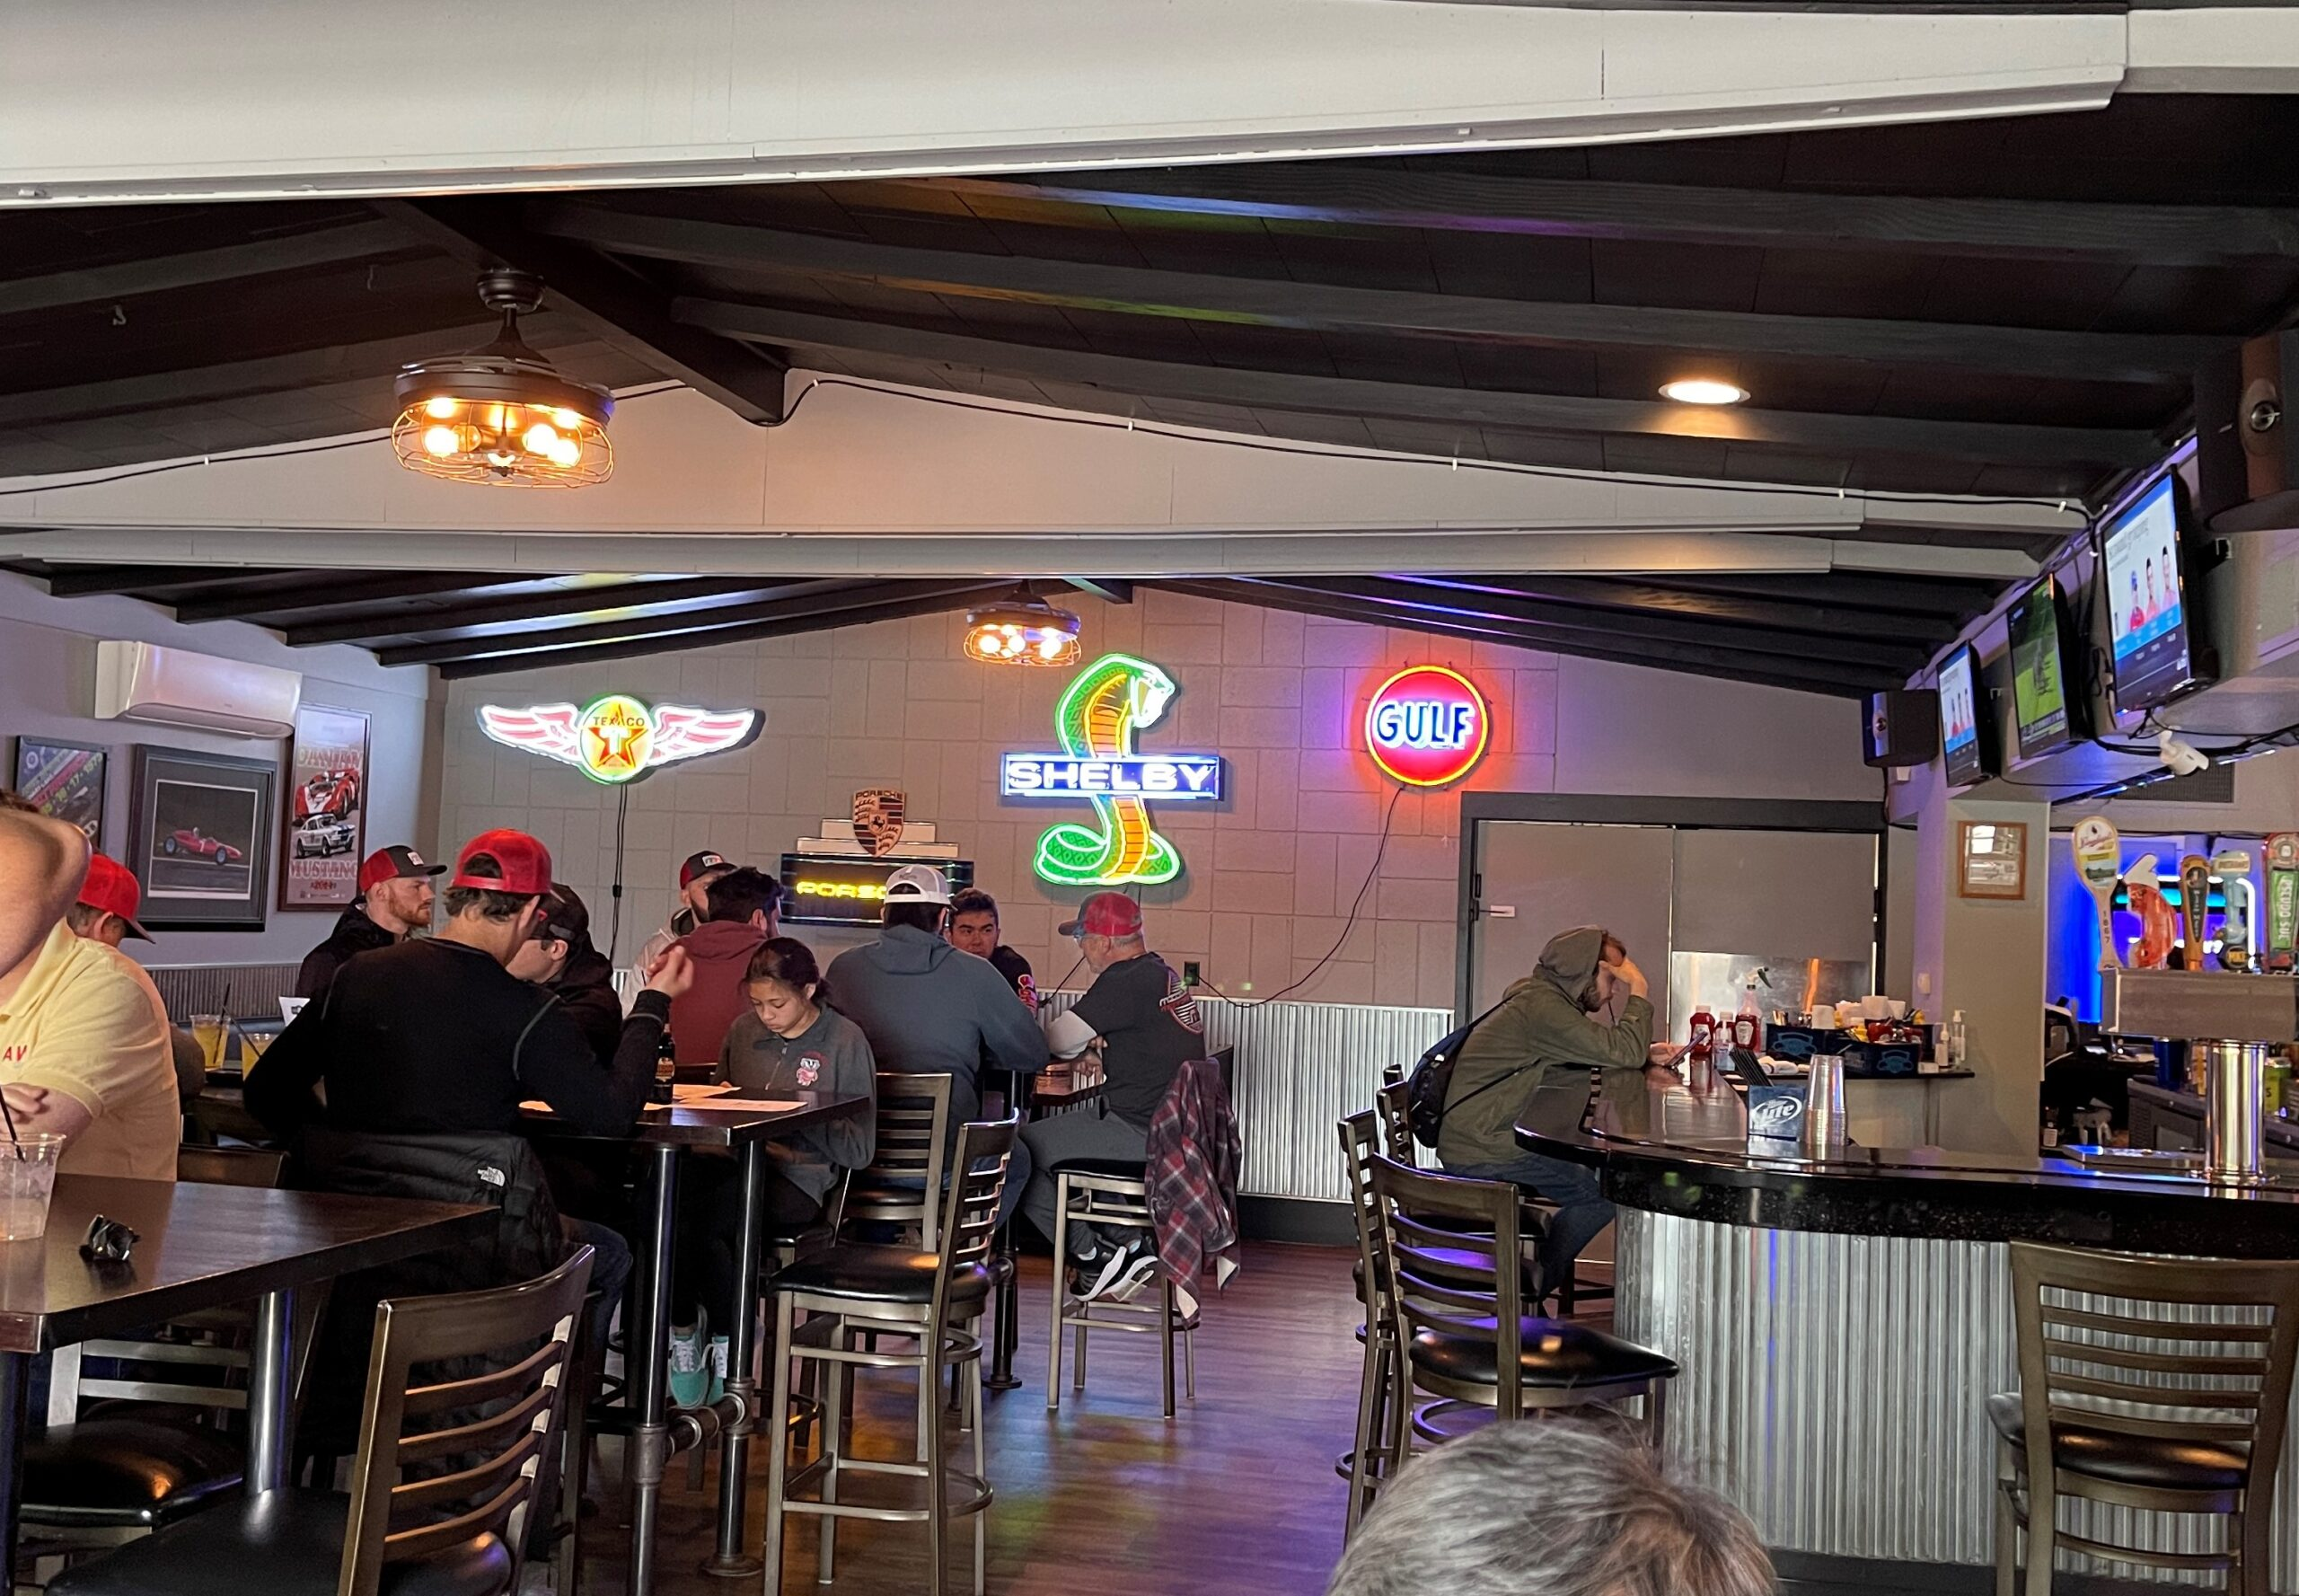 the route 67 saloon is one of the most fun elkhart lake restaurants.